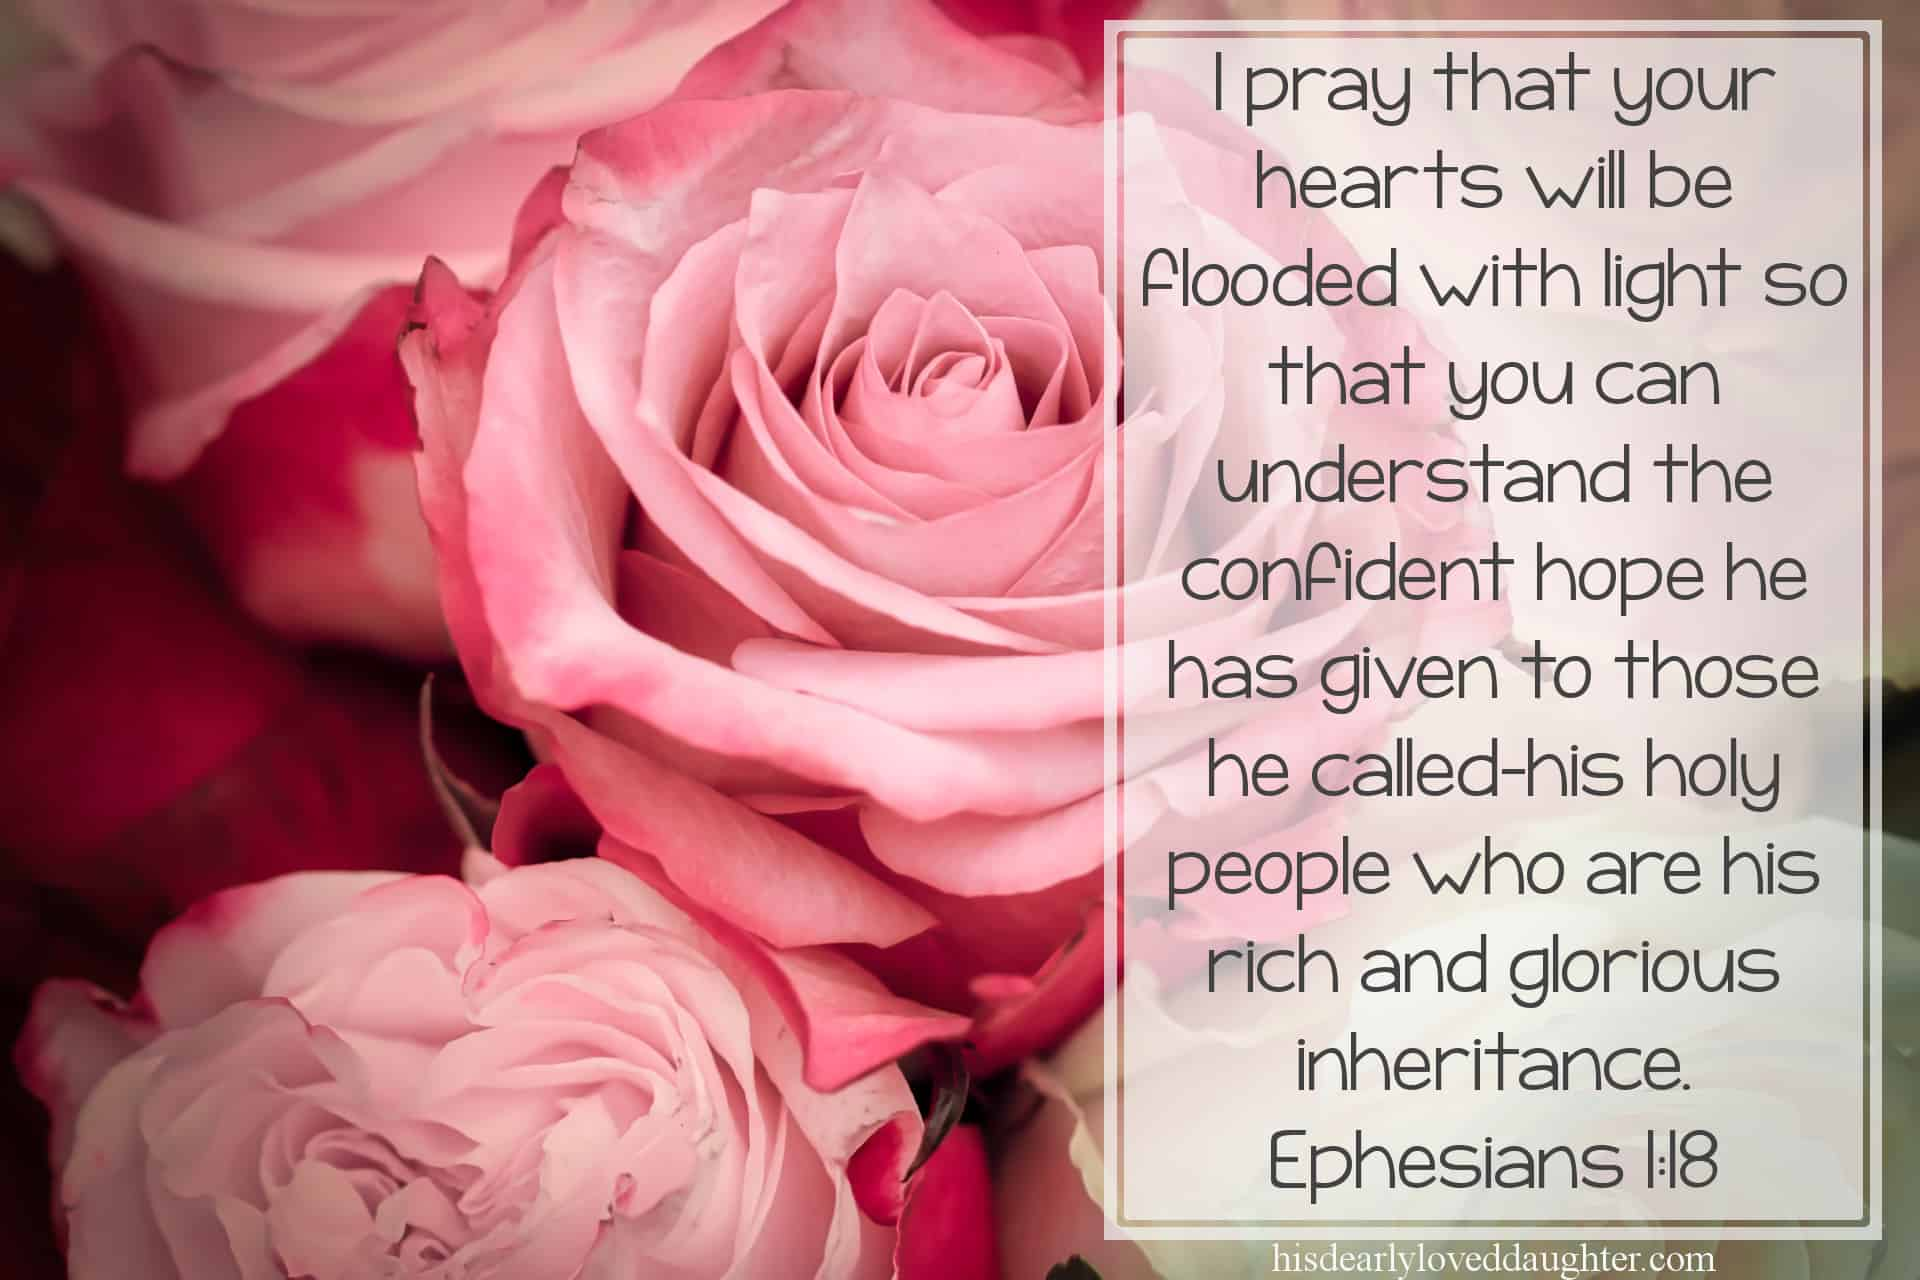 I pray that your hearts will be flooded with light so that you can understand the confident hope he has given to those he called—his holy people who are his rich and glorious inheritance. Ephesians 1:18